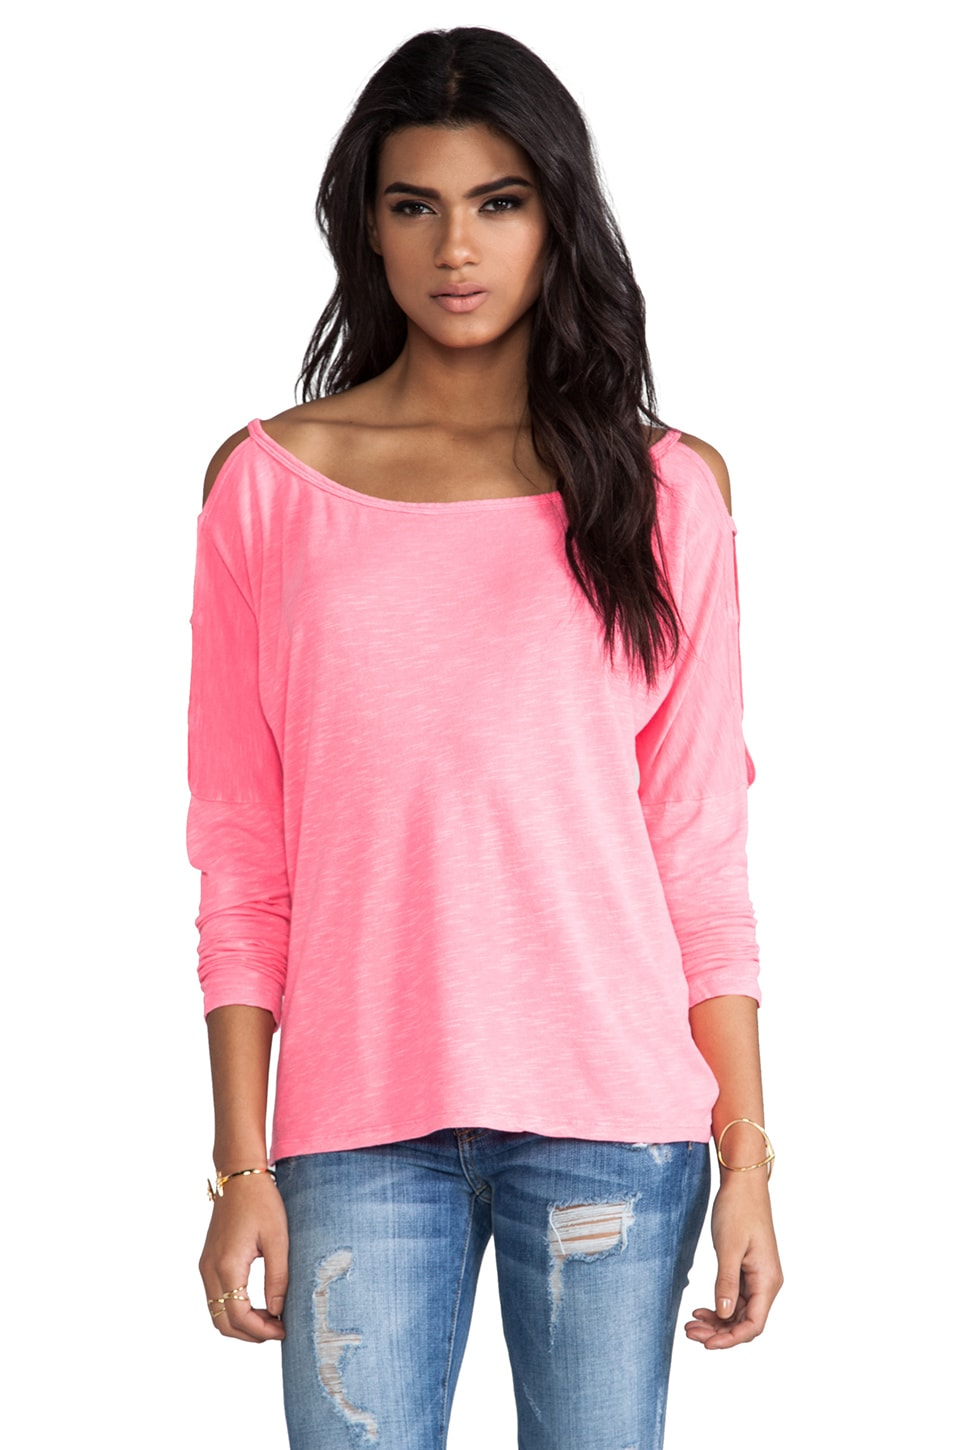 Bobi Slub Long Sleeve Tee in Neon Candy